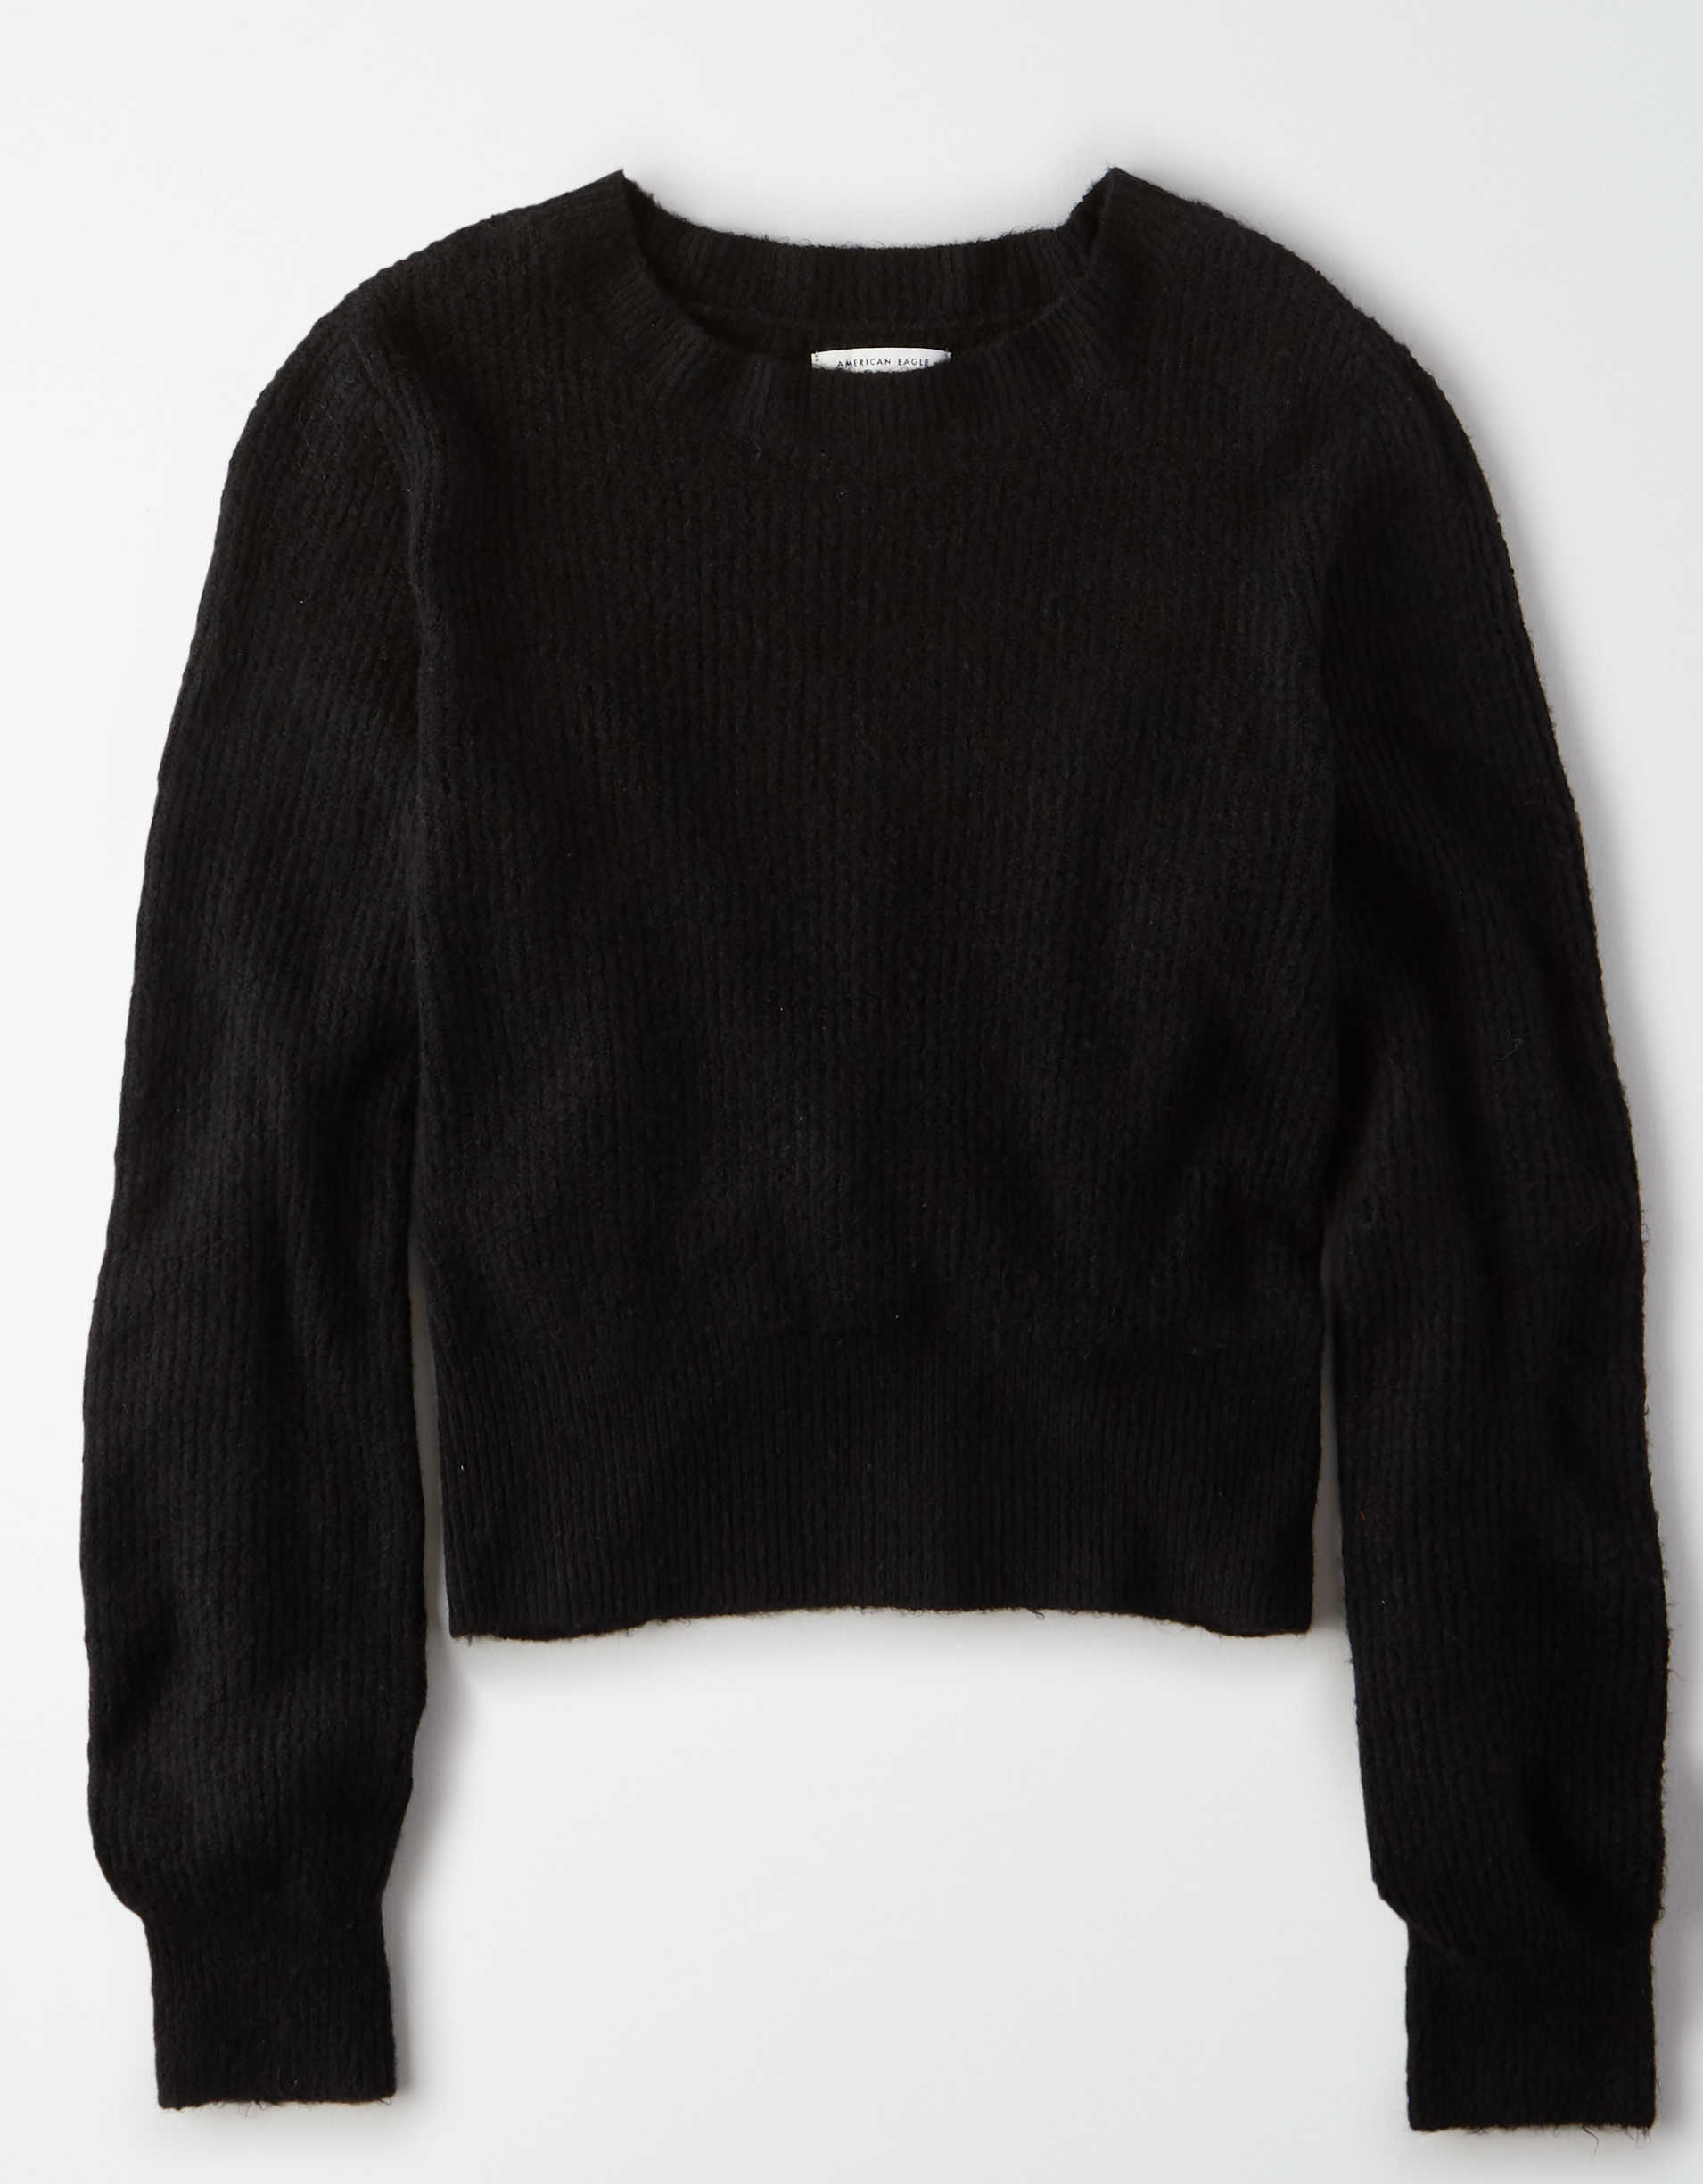 AE Balloon Sleeve Crew Neck Sweater